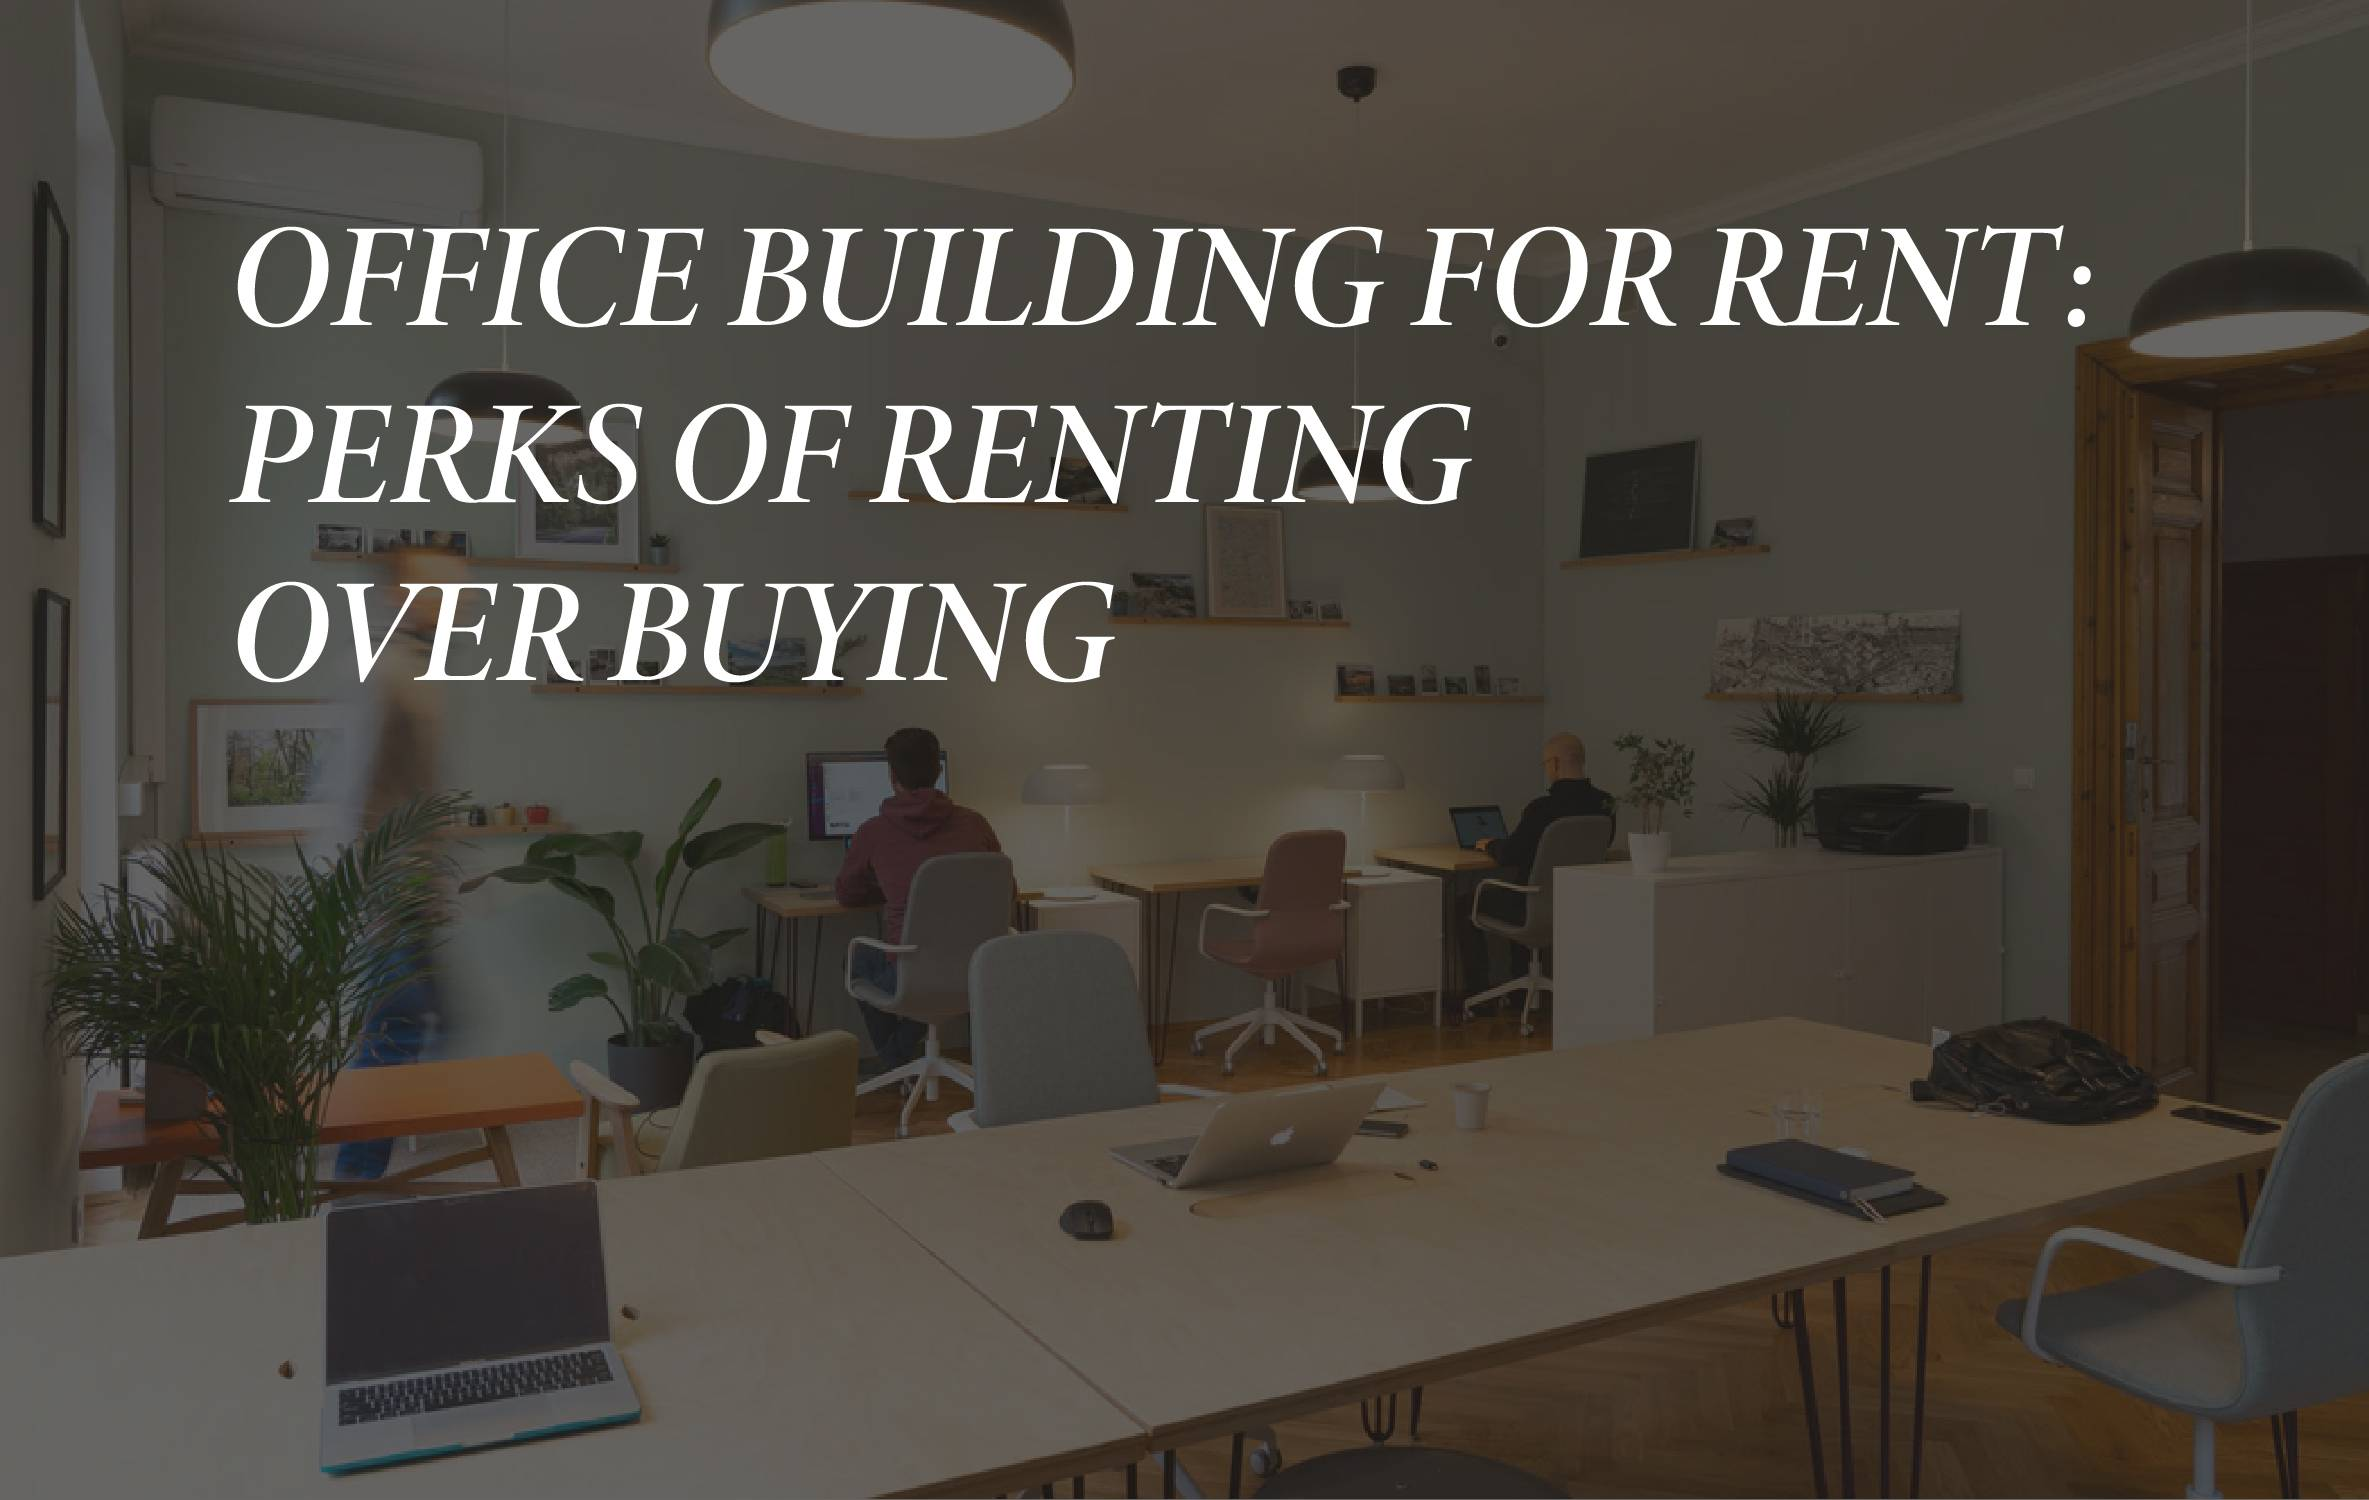 Office building for rent